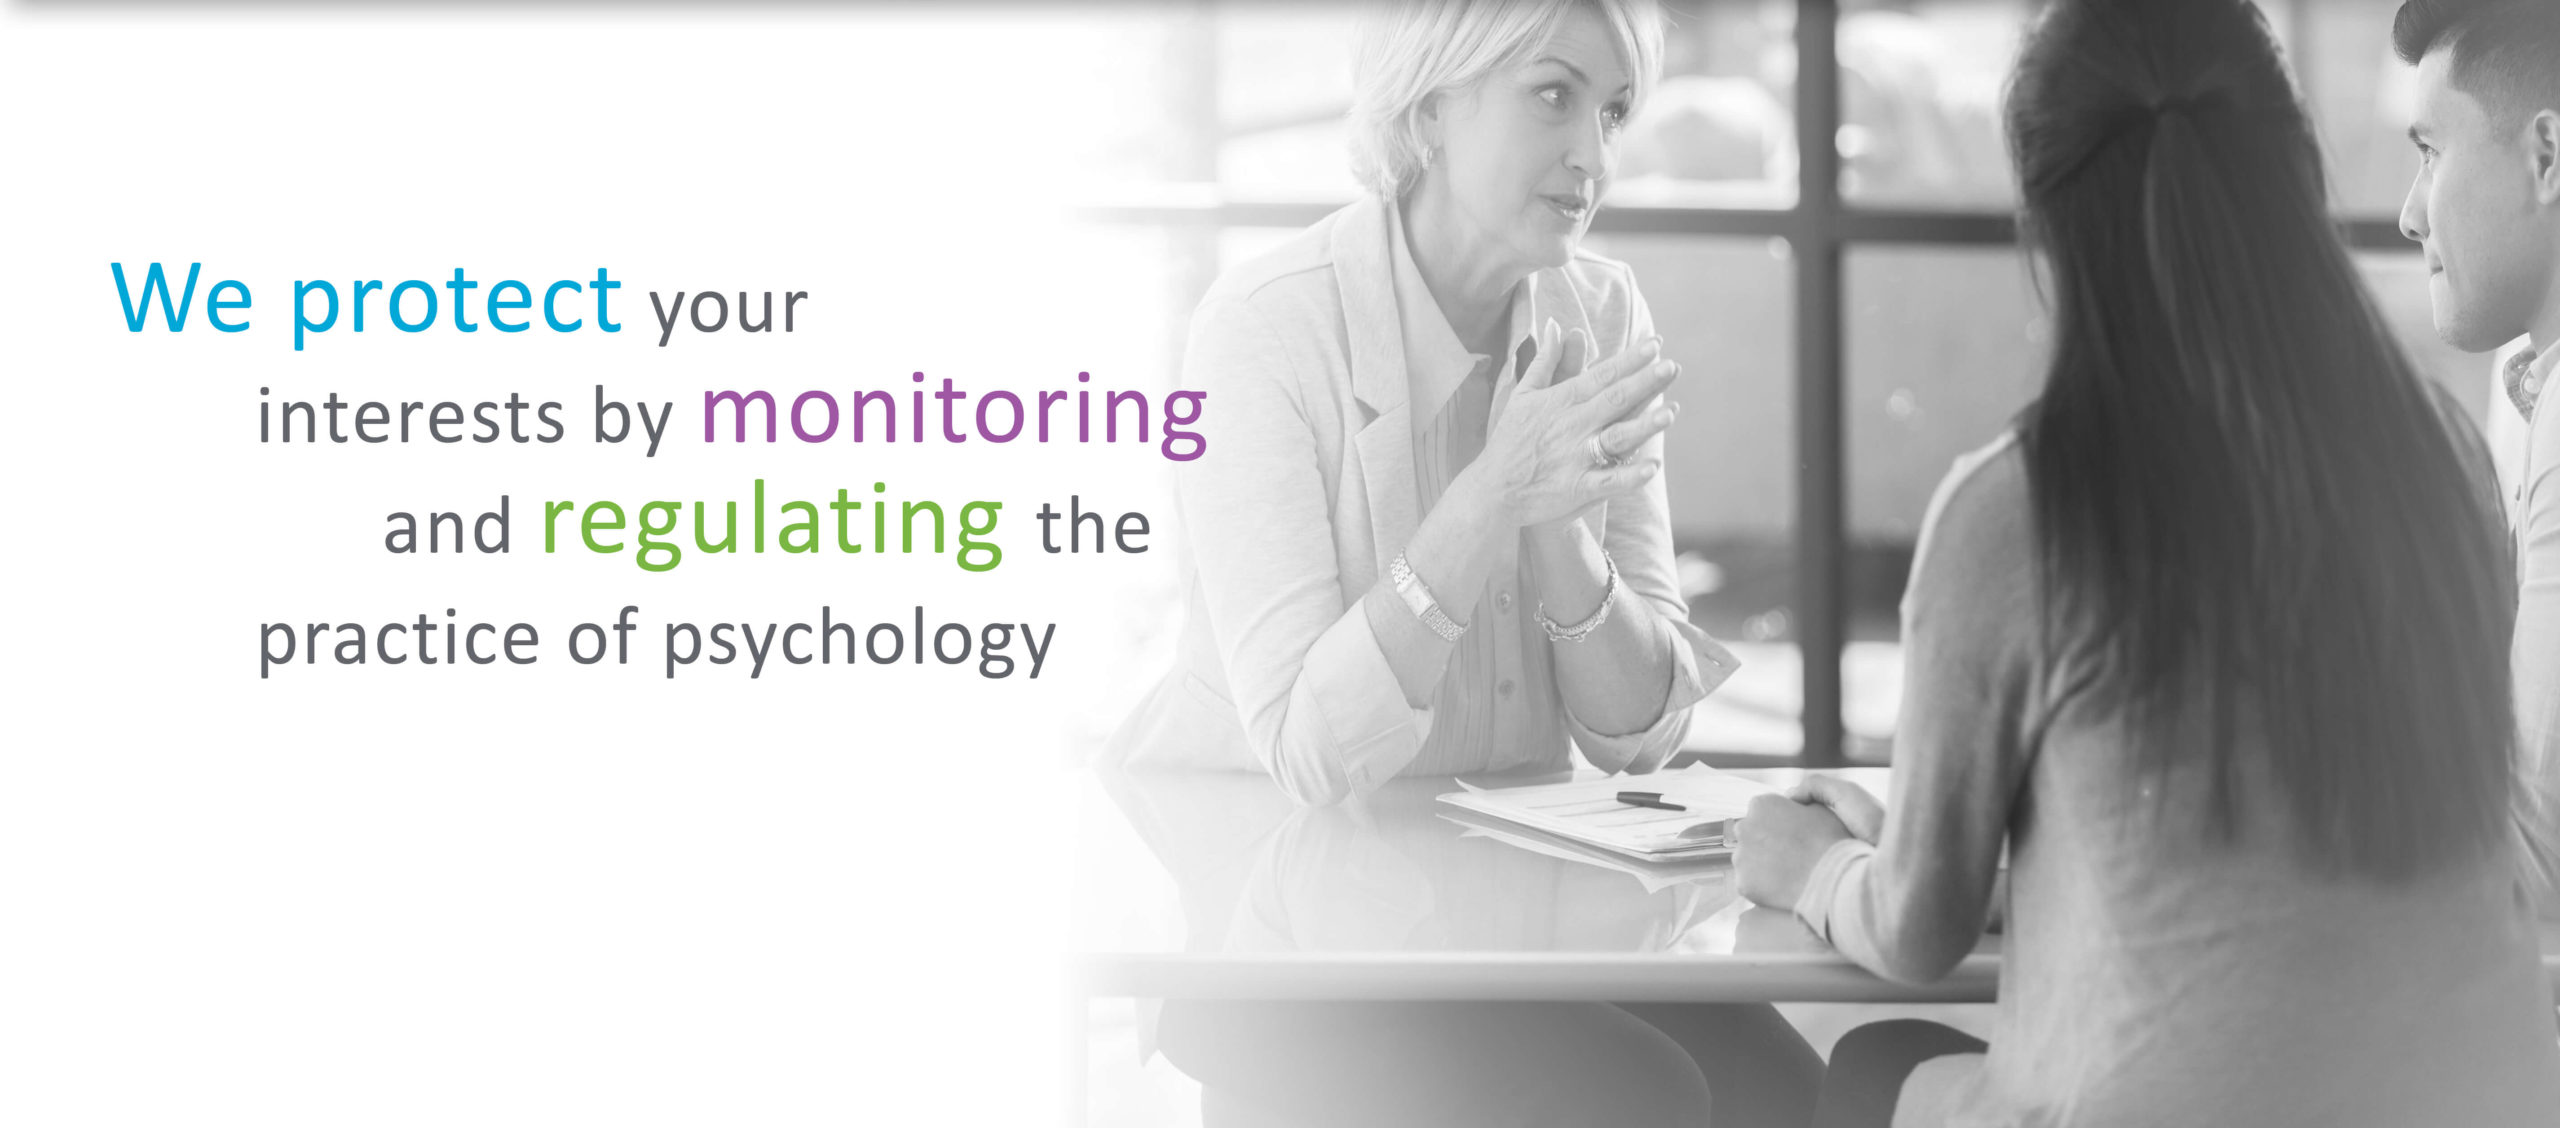 We protect your interests by monitoring and regulating the practice of psychology